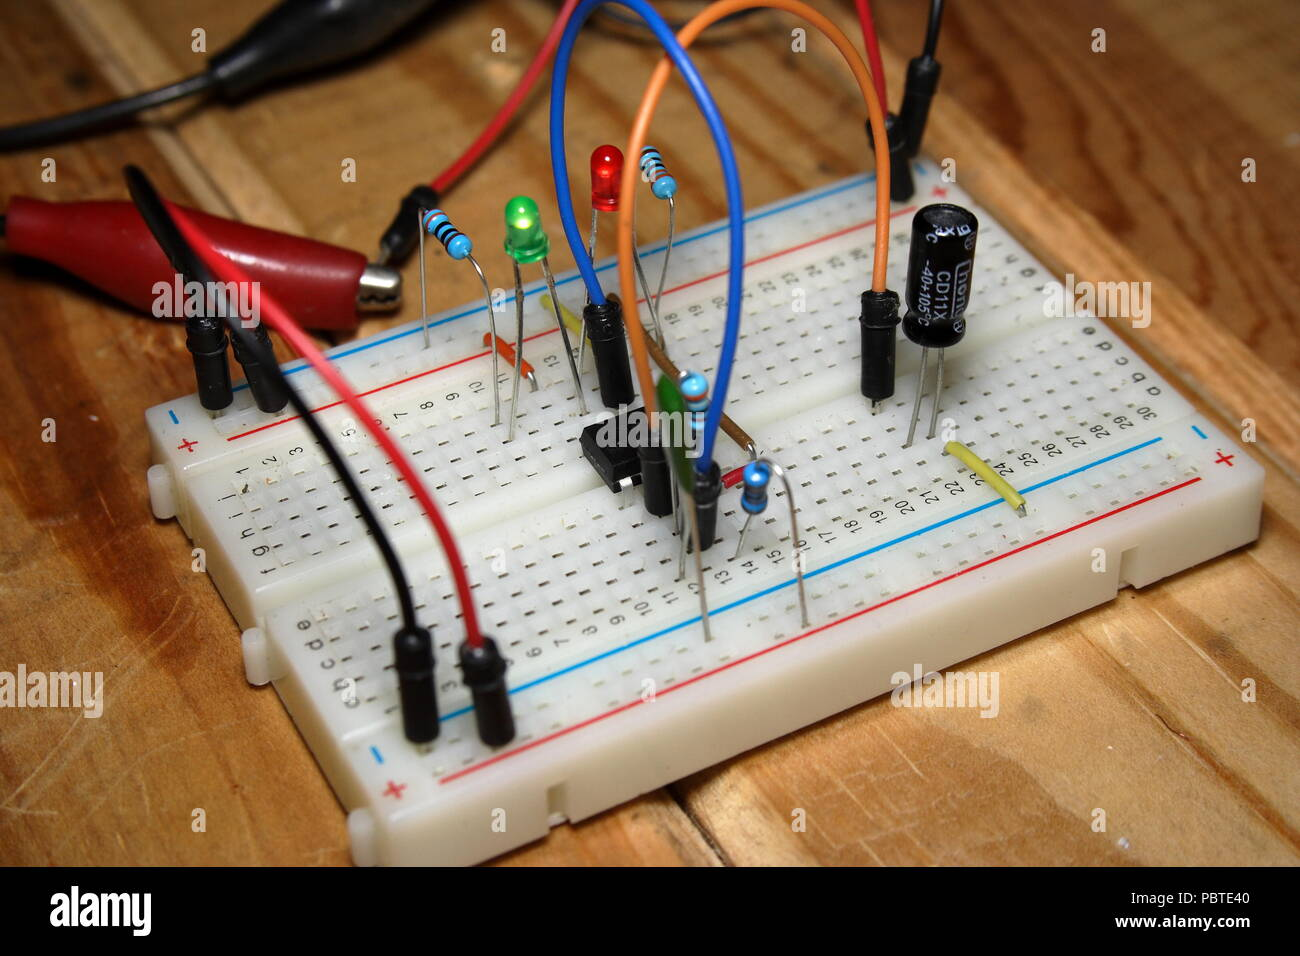 Electronic Circuit Hobby Project Stock Photo 213823568 Alamy Projects For Beginners Circuits